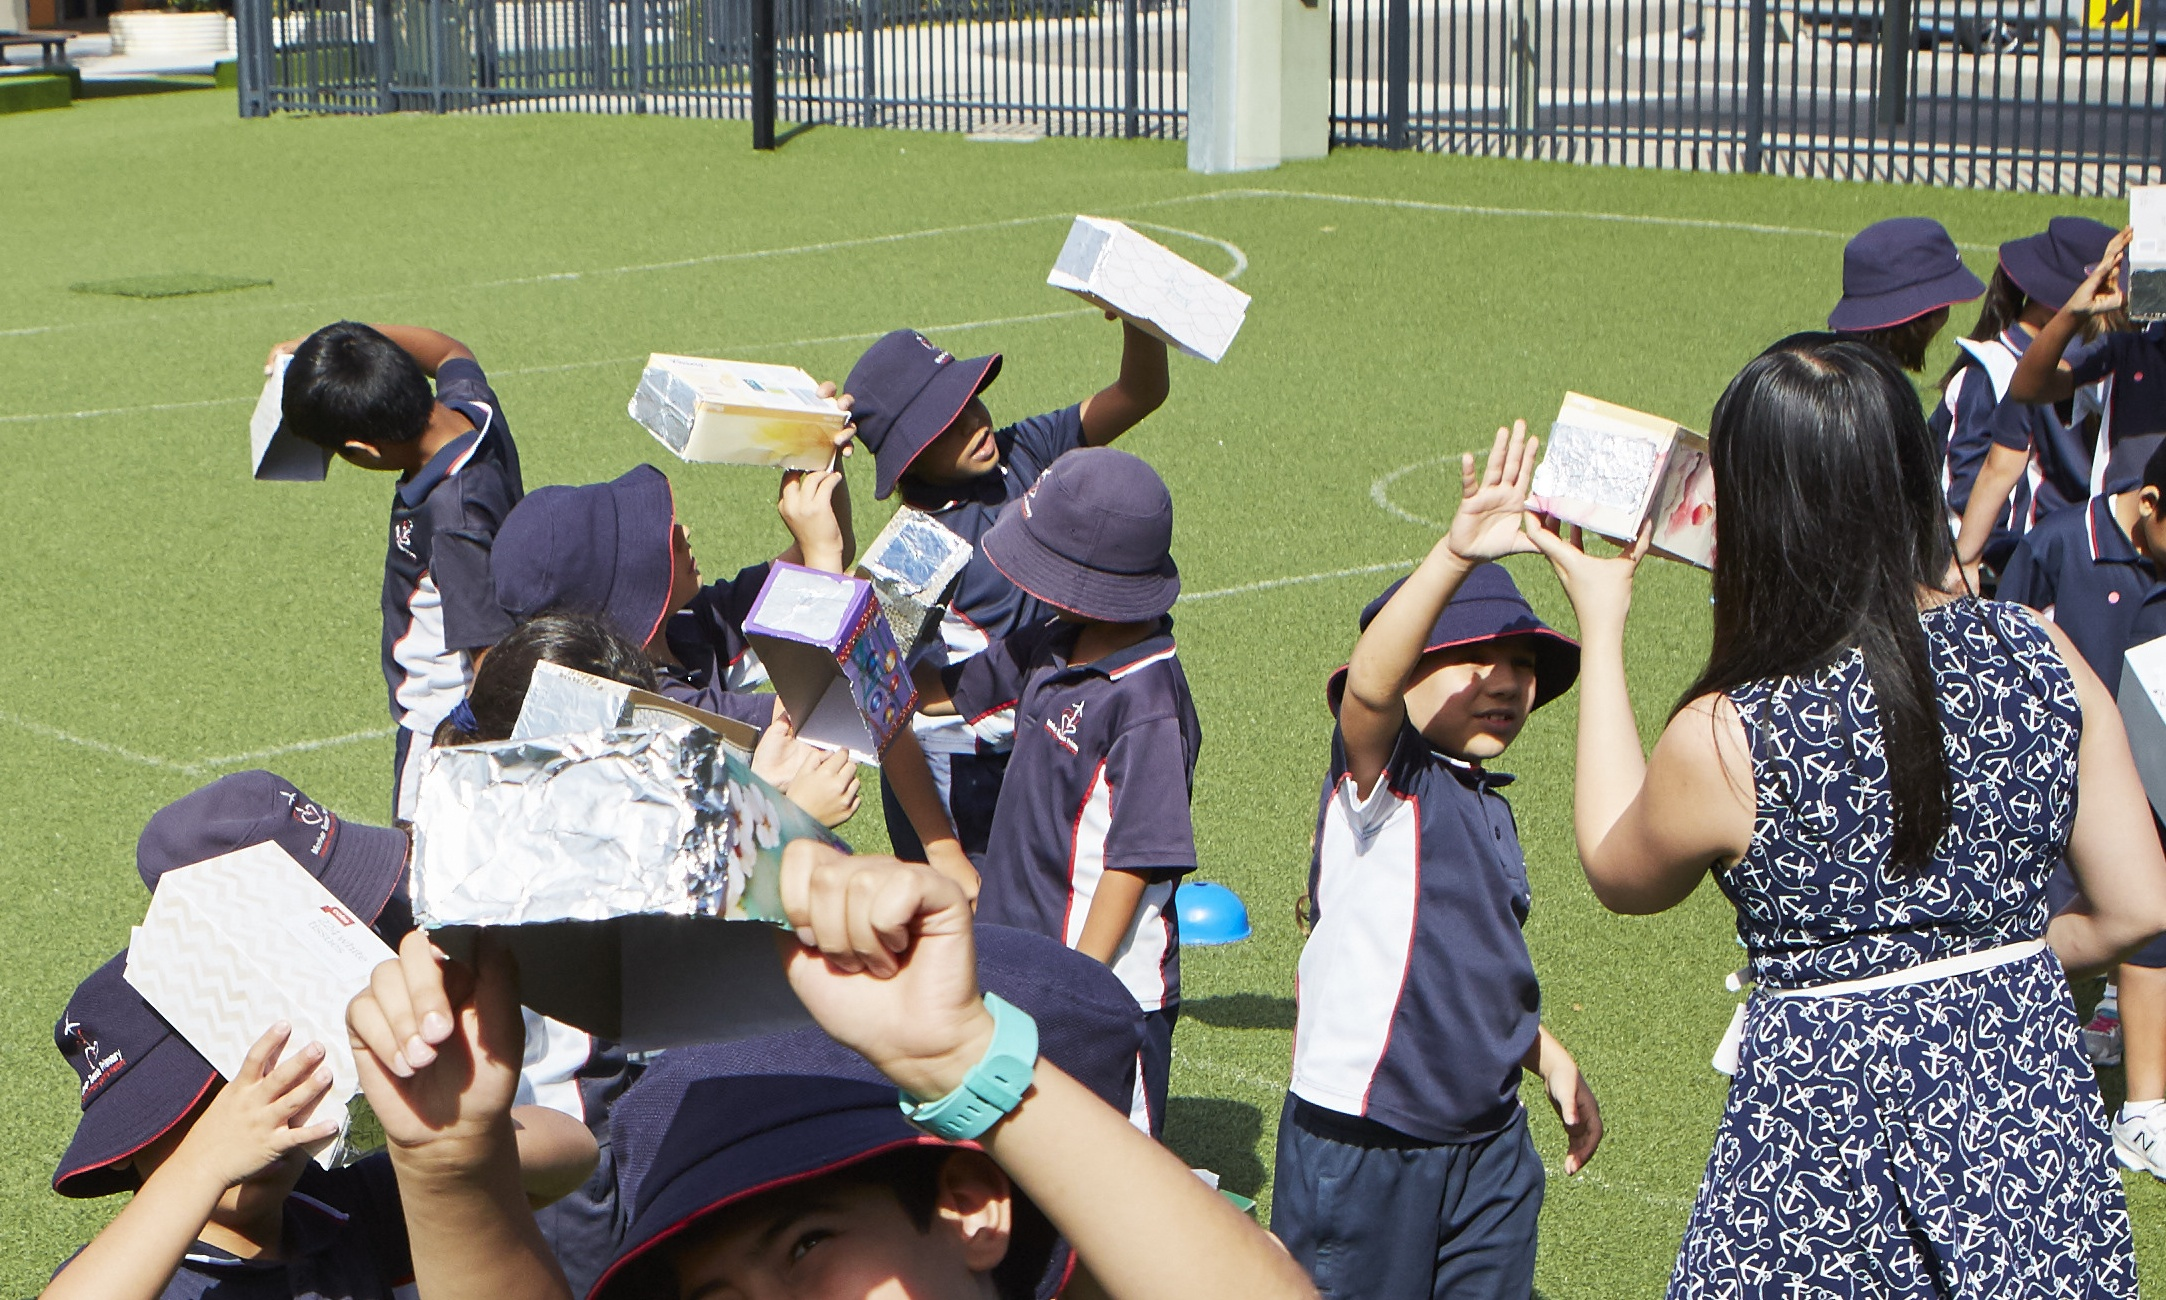 students testing their pin hole camera experiment in the field with their teacher